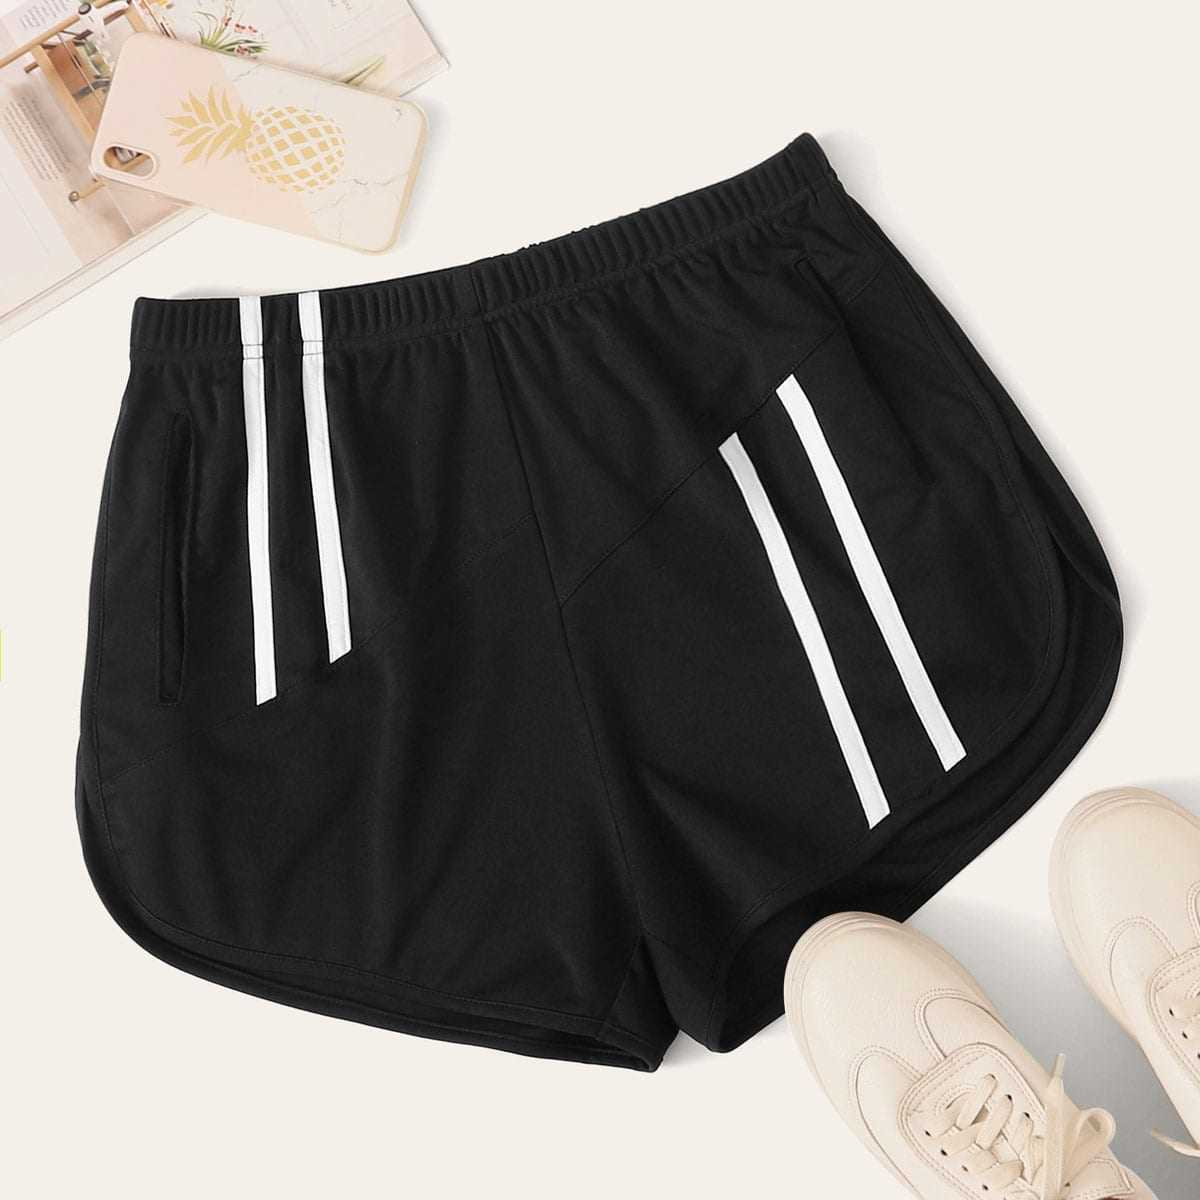 Striped Tape Panel Elastic Waist Track Shorts in Black by ROMWE on GOOFASH